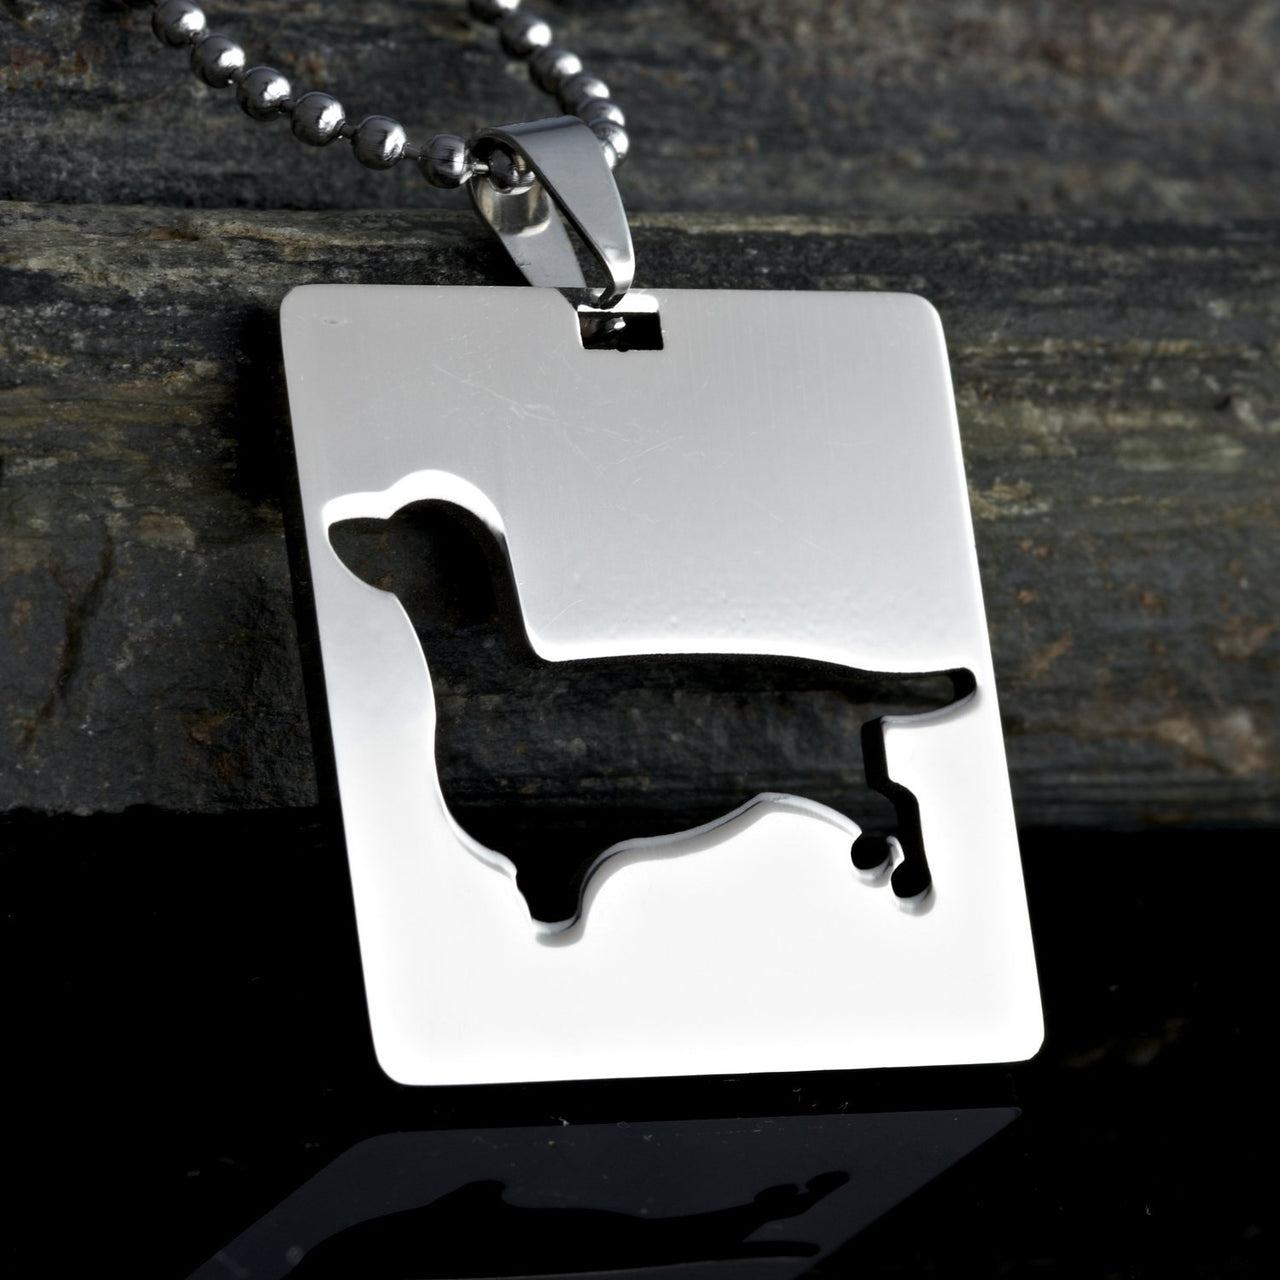 2x Stainless Steel Square Shape Dachshund Doxie Wiener Sausage Dog Silhouette Pet Dog Tag Breed Collar Charm Pendant Necklace